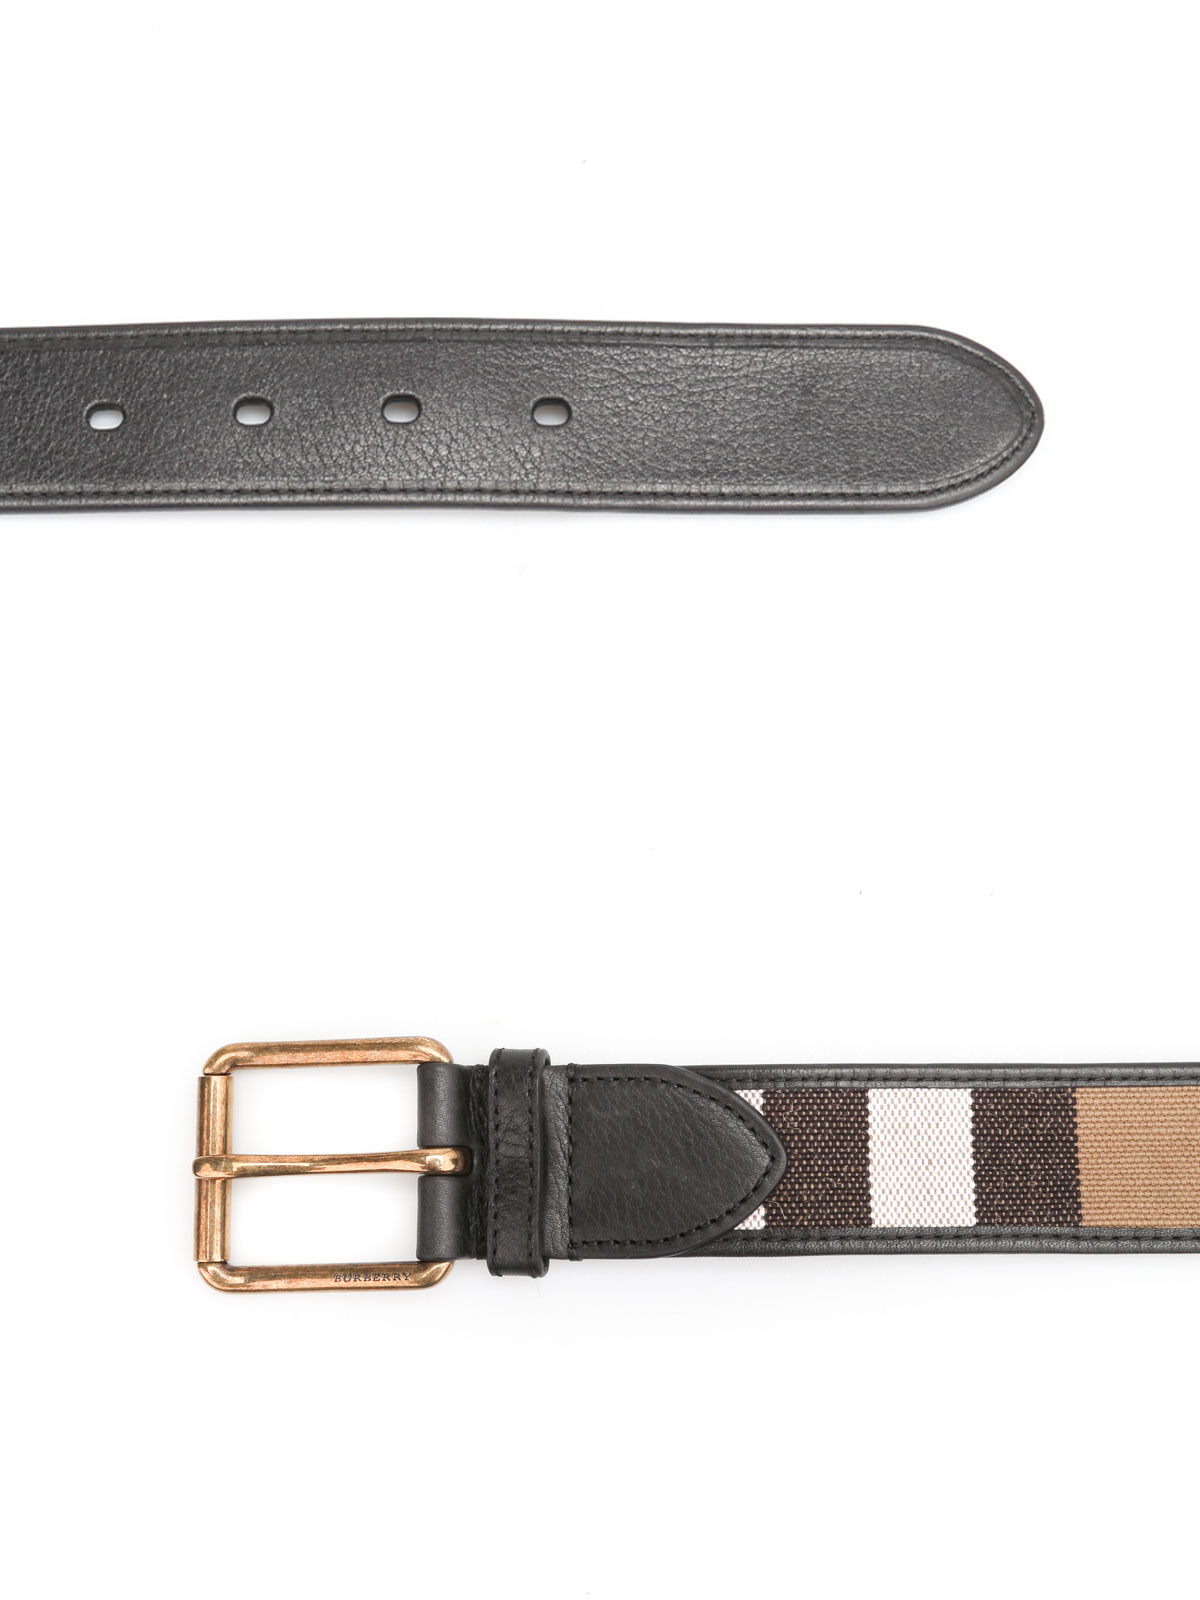 Shop for and buy belt online at Macy's. Find belt at Macy's.